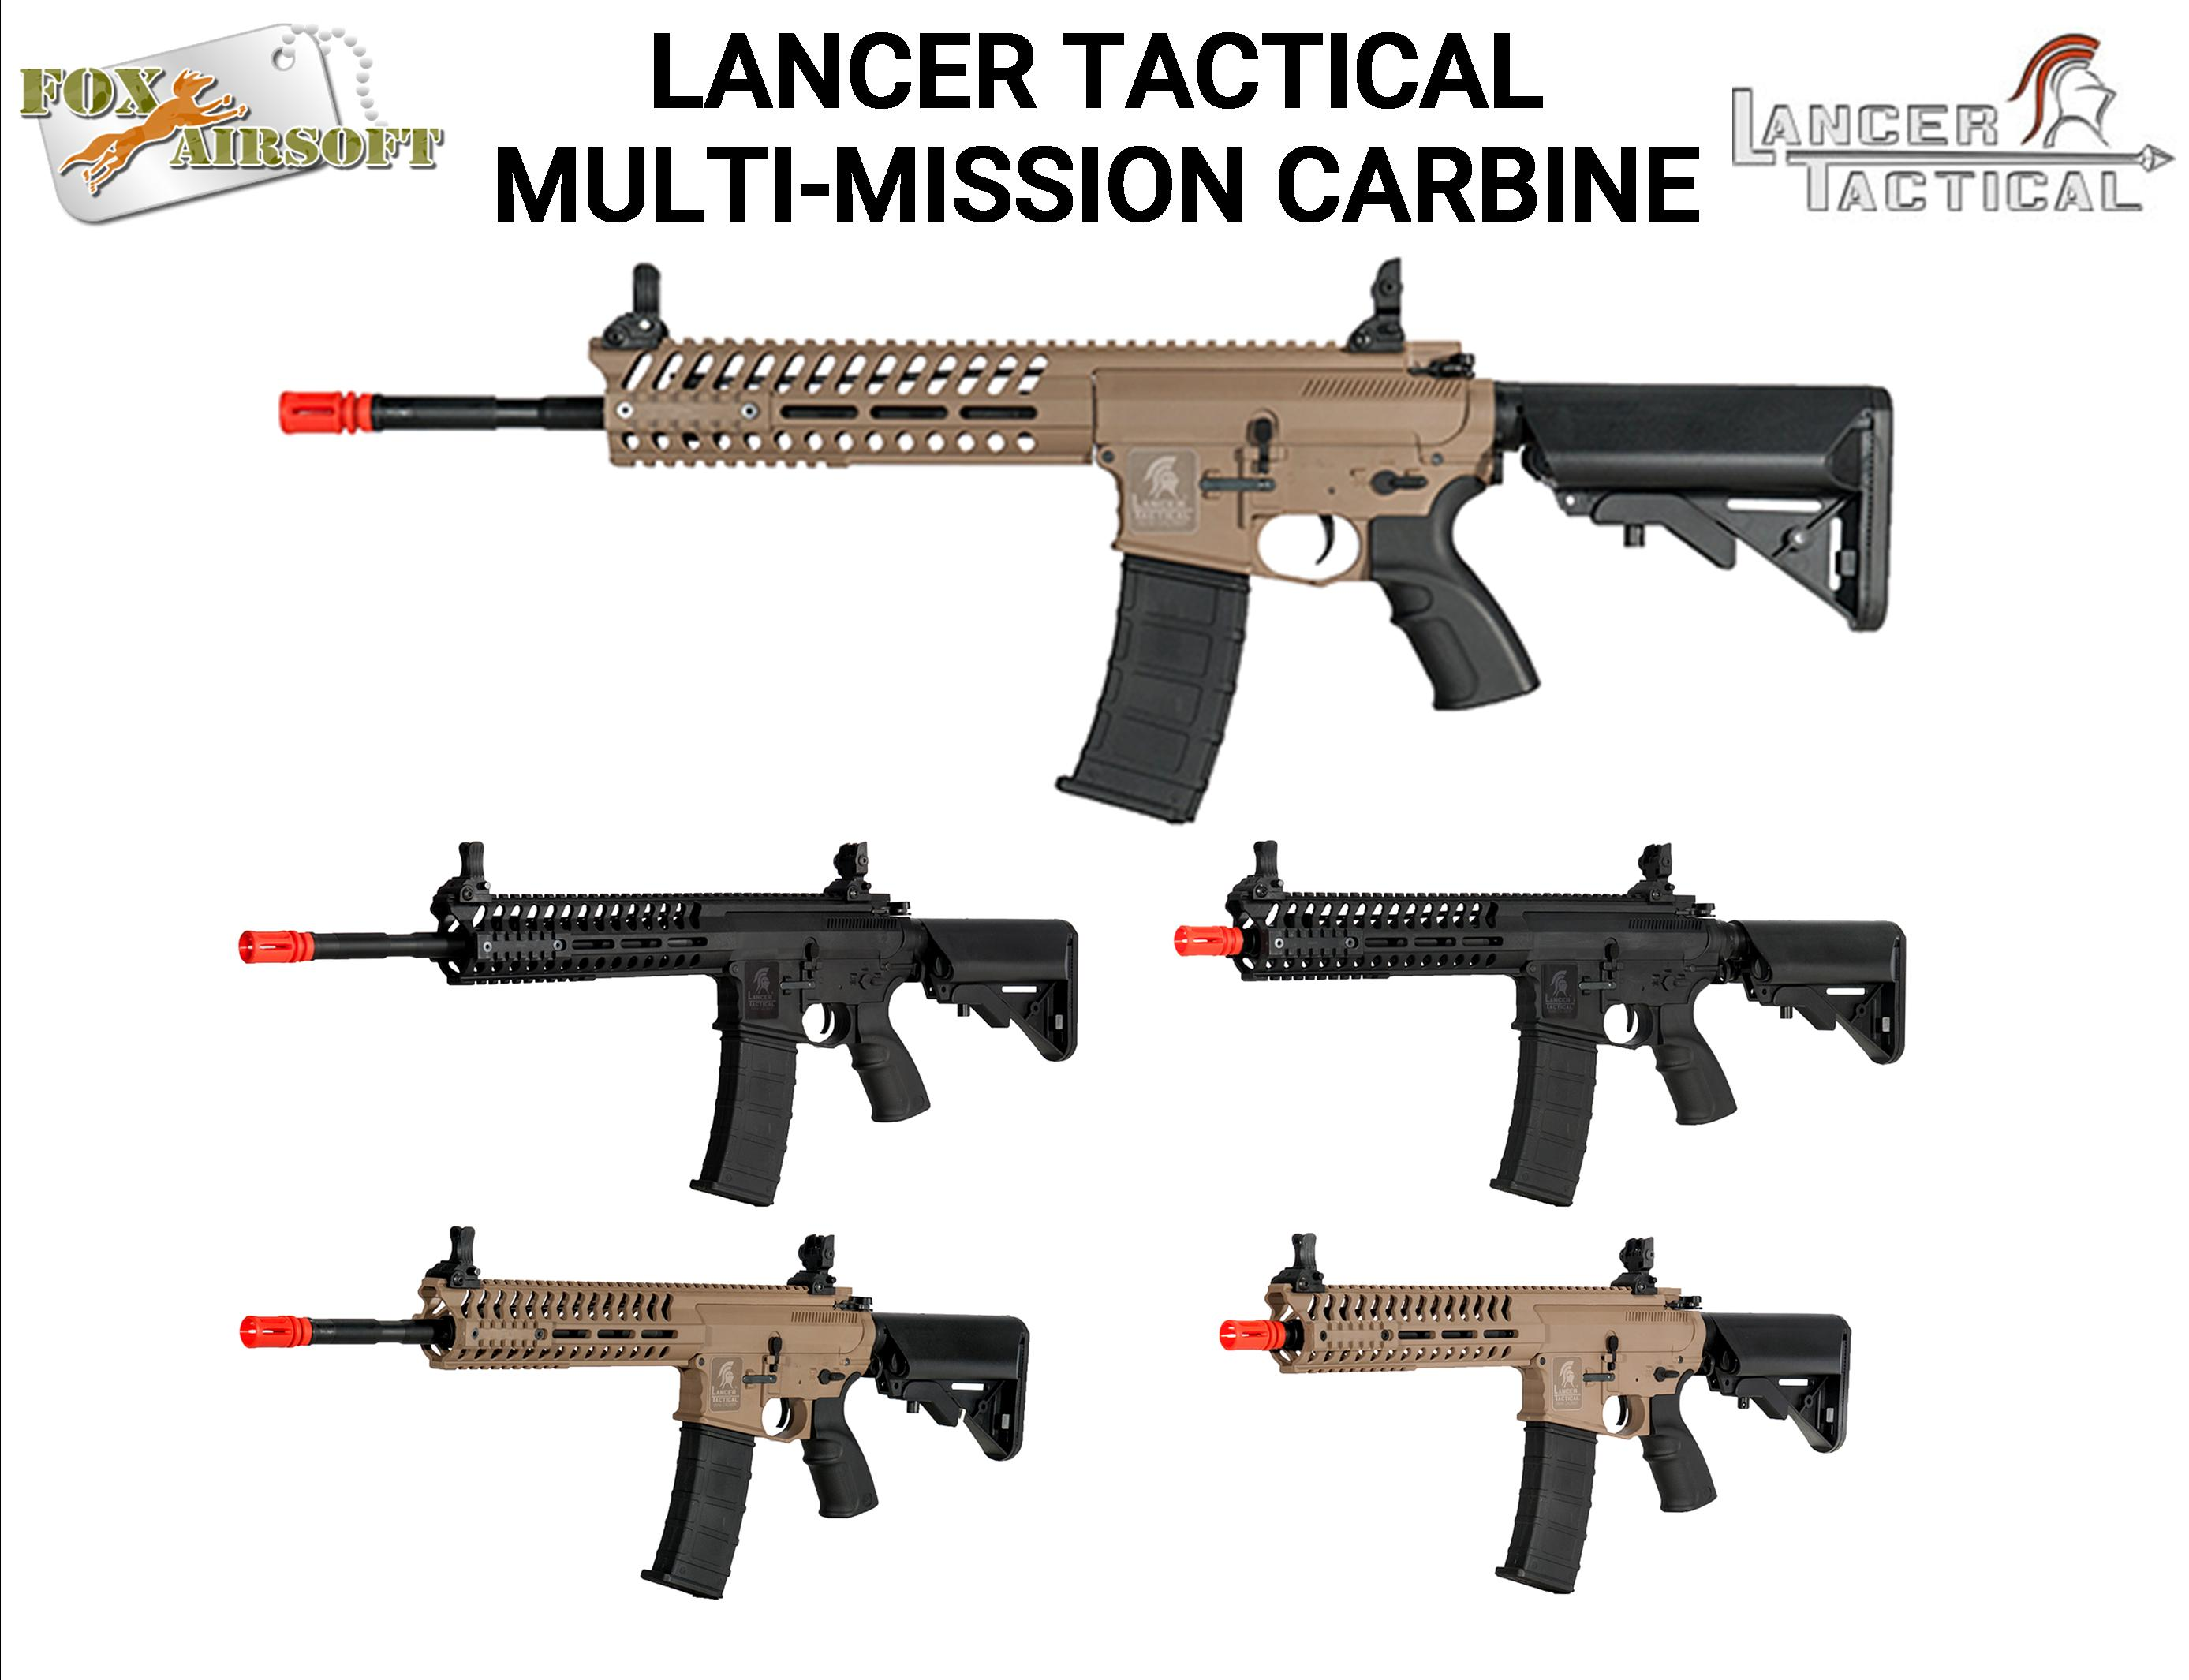 lancer-tactical-multi-mission-carbine-revised-1-.jpg